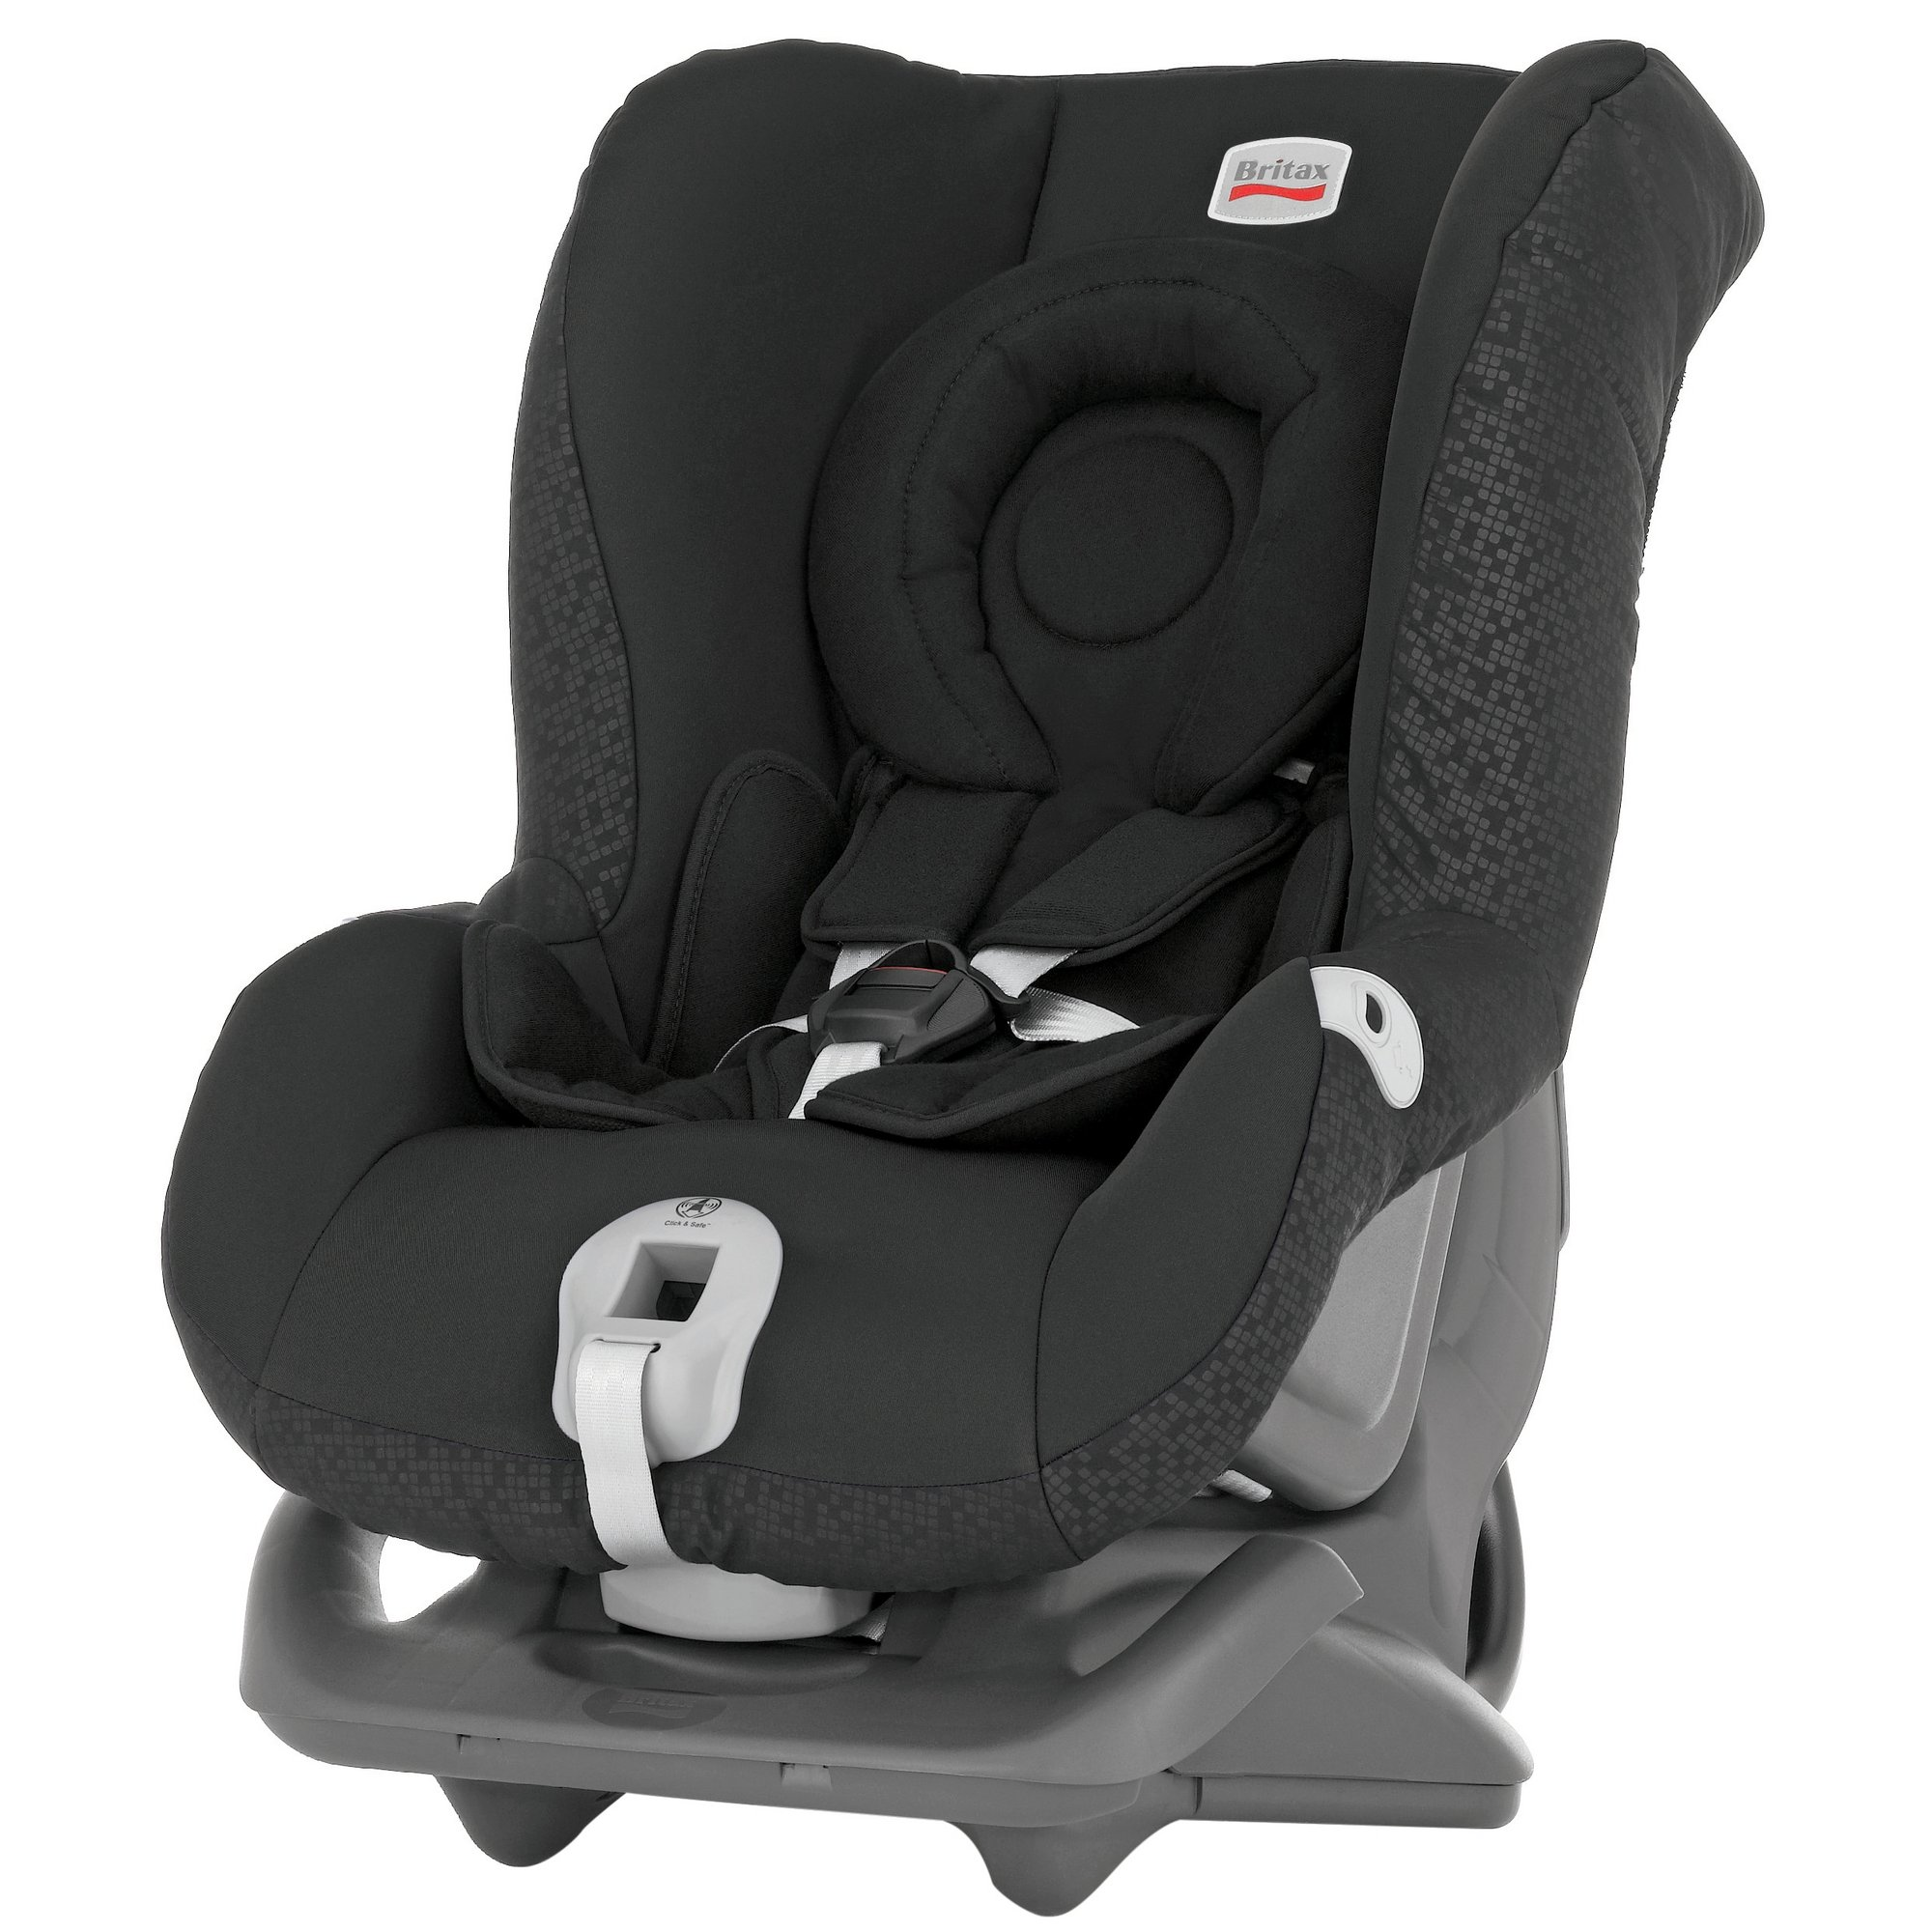 britax eclipse car seat o sullivans prams toys. Black Bedroom Furniture Sets. Home Design Ideas